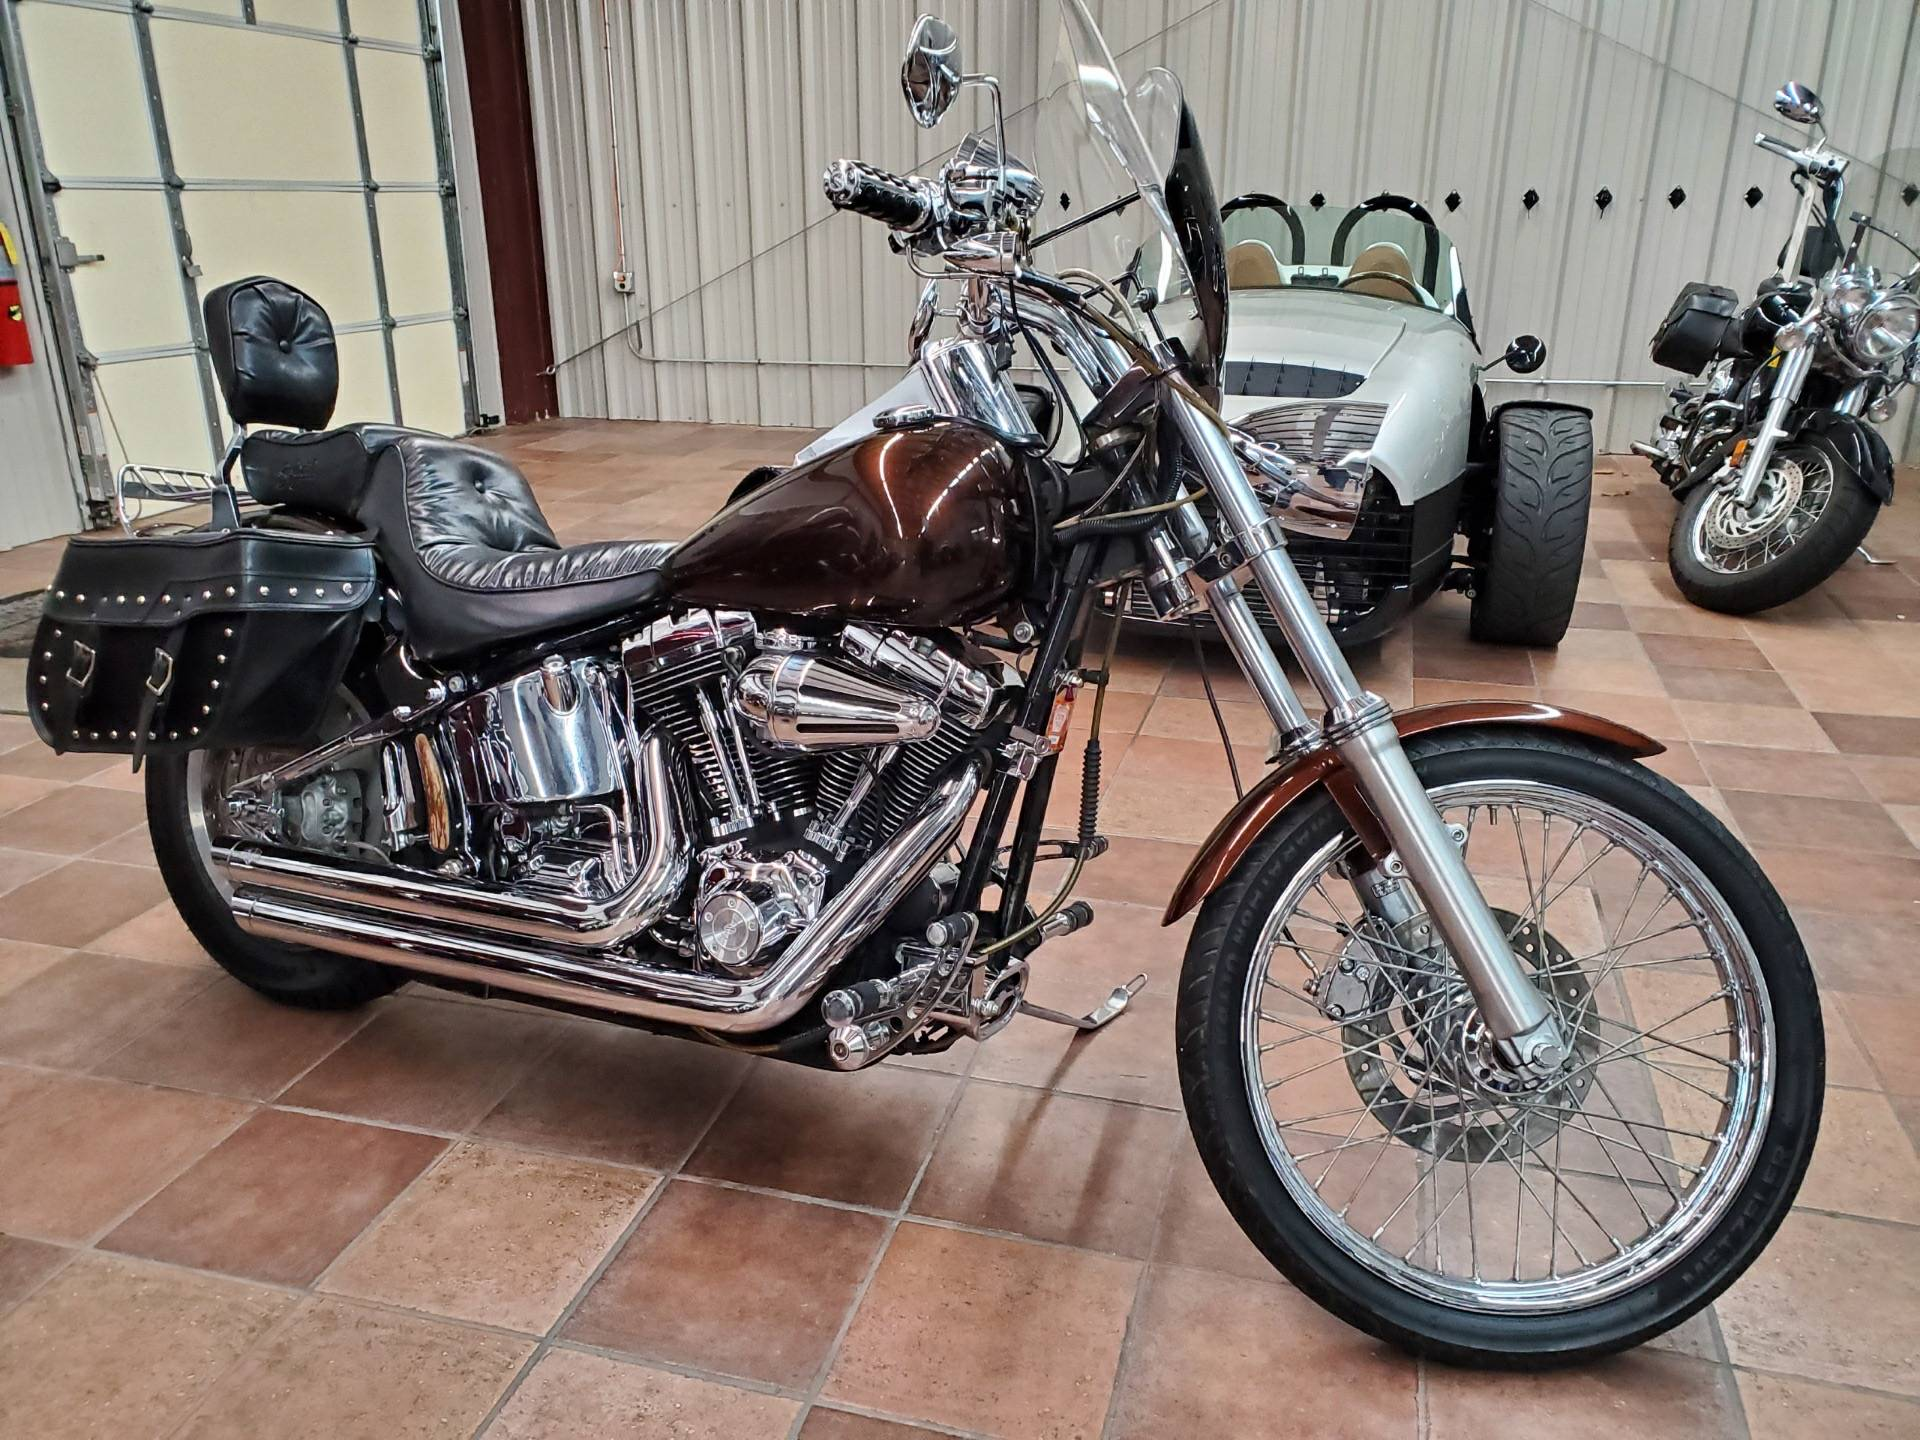 2008 CUSTOM ASSEMBLED Assembled in Hico, West Virginia - Photo 1